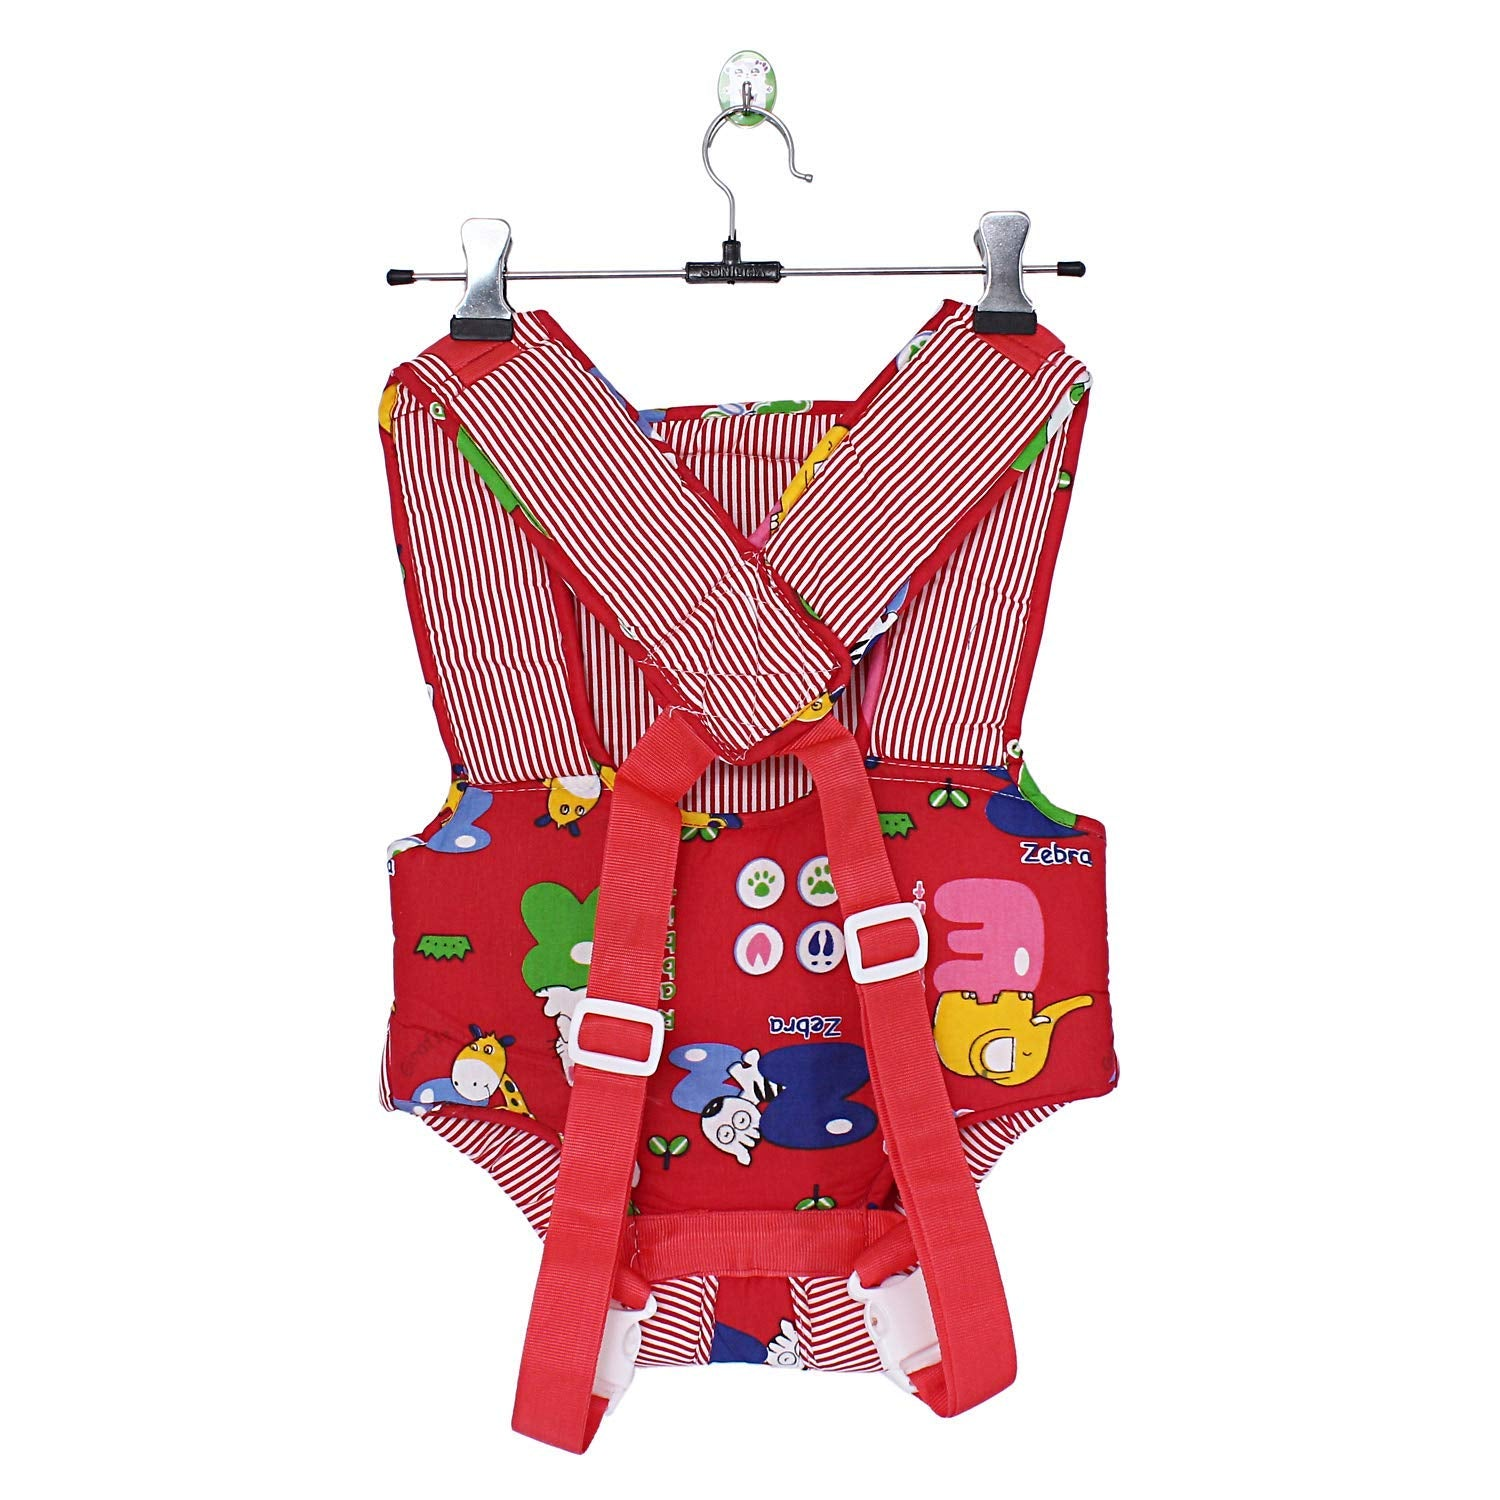 Printed Baby Carrier Backpack - Best for Baby (Red) - Bagaholics Gift